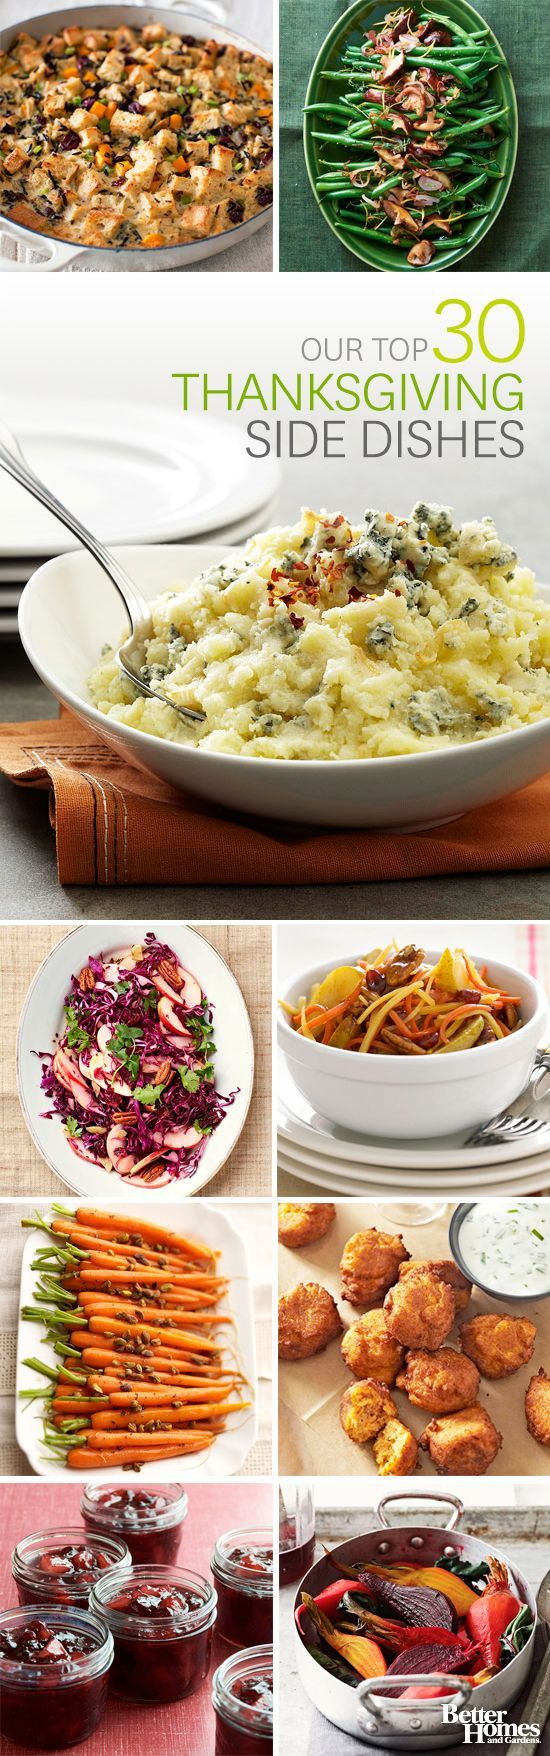 Scrumptious Thanksgiving side dish recipes